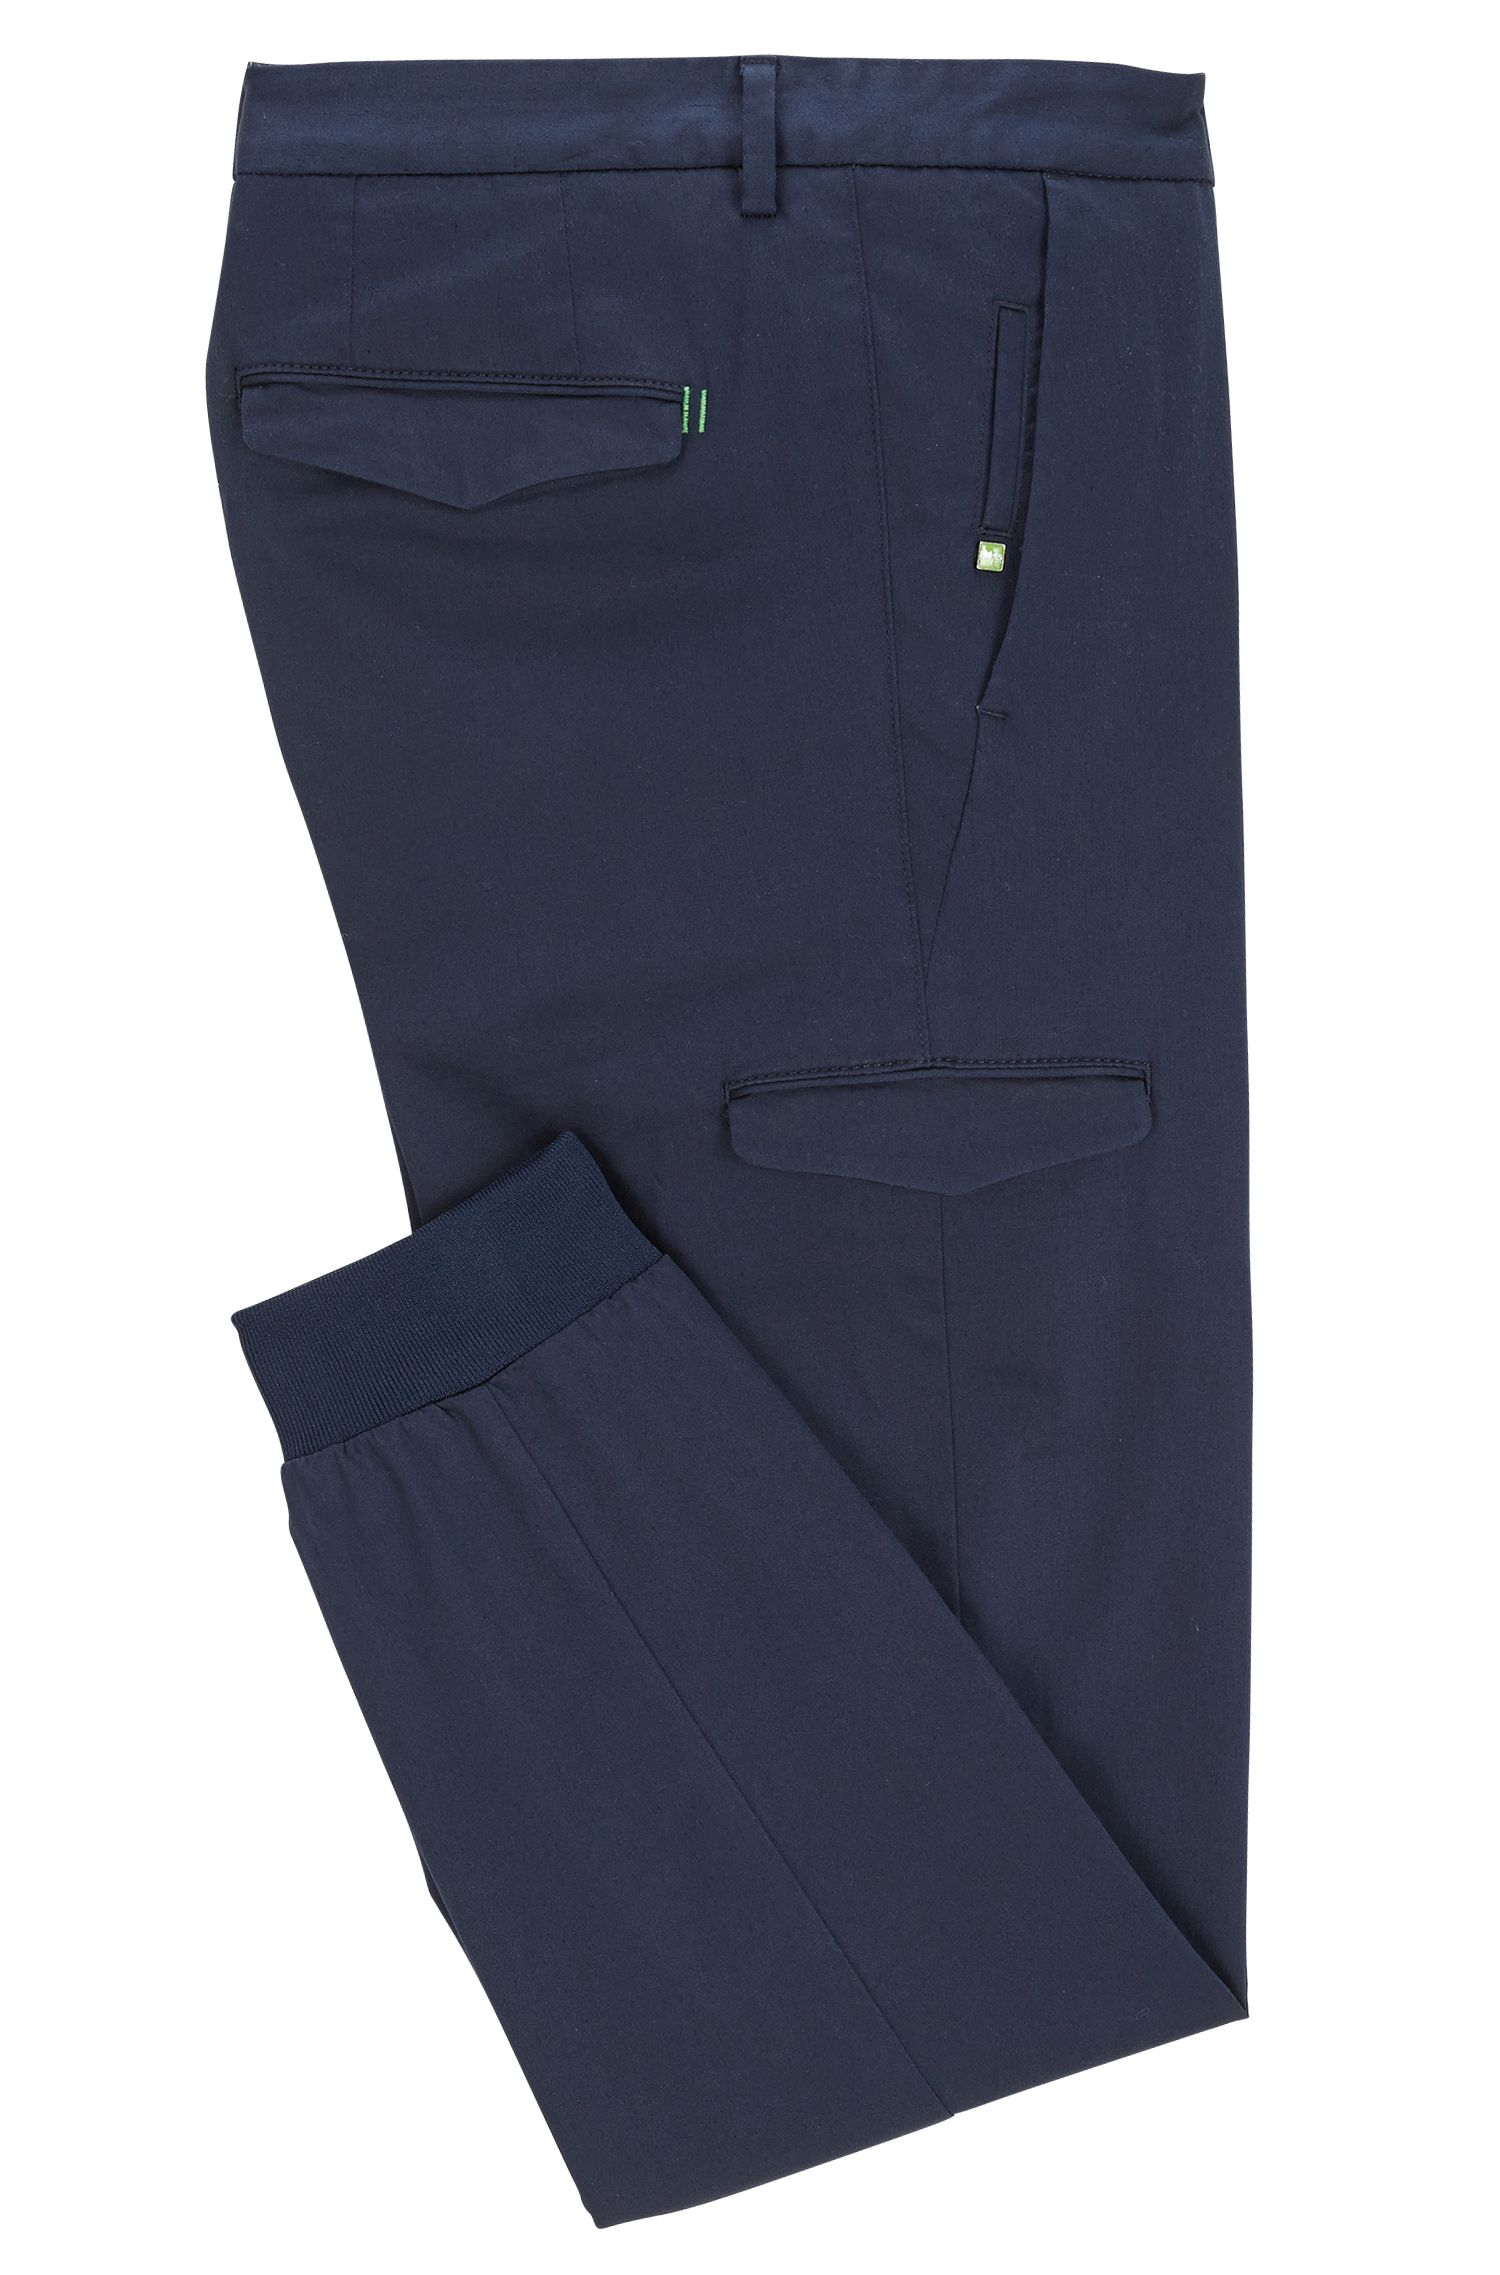 Cotton Cargo Pants, Slim Fit | Loomes W